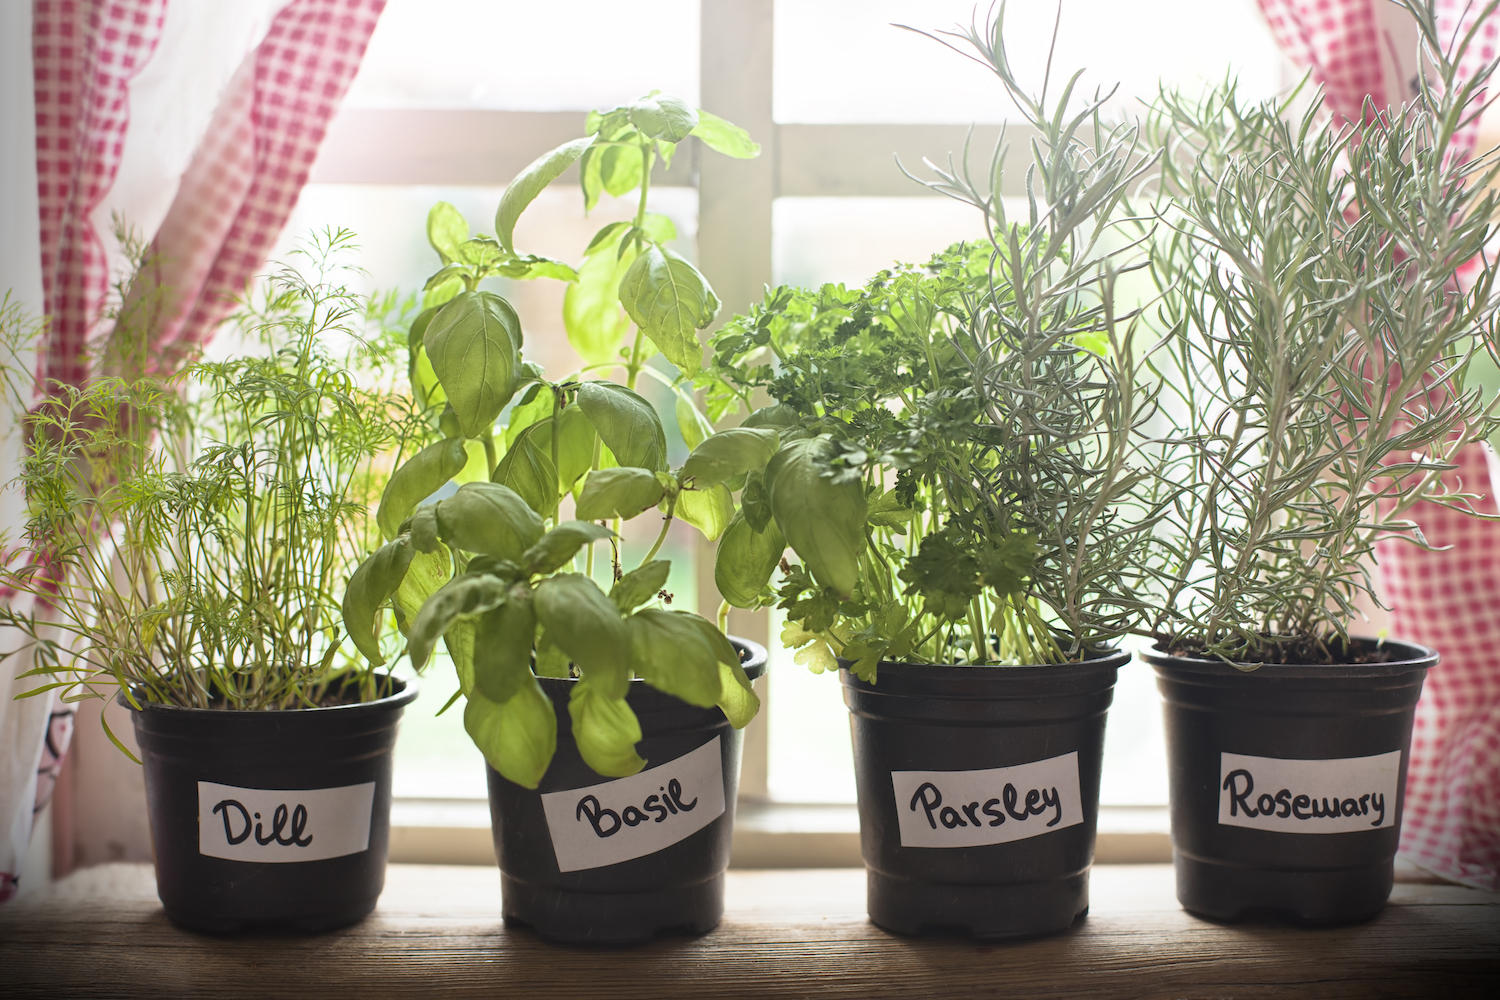 Vermont garden journal 6 tips for starting a windowsill herb garden if youre a fan of gardening you might have been gifted seeds this workwithnaturefo